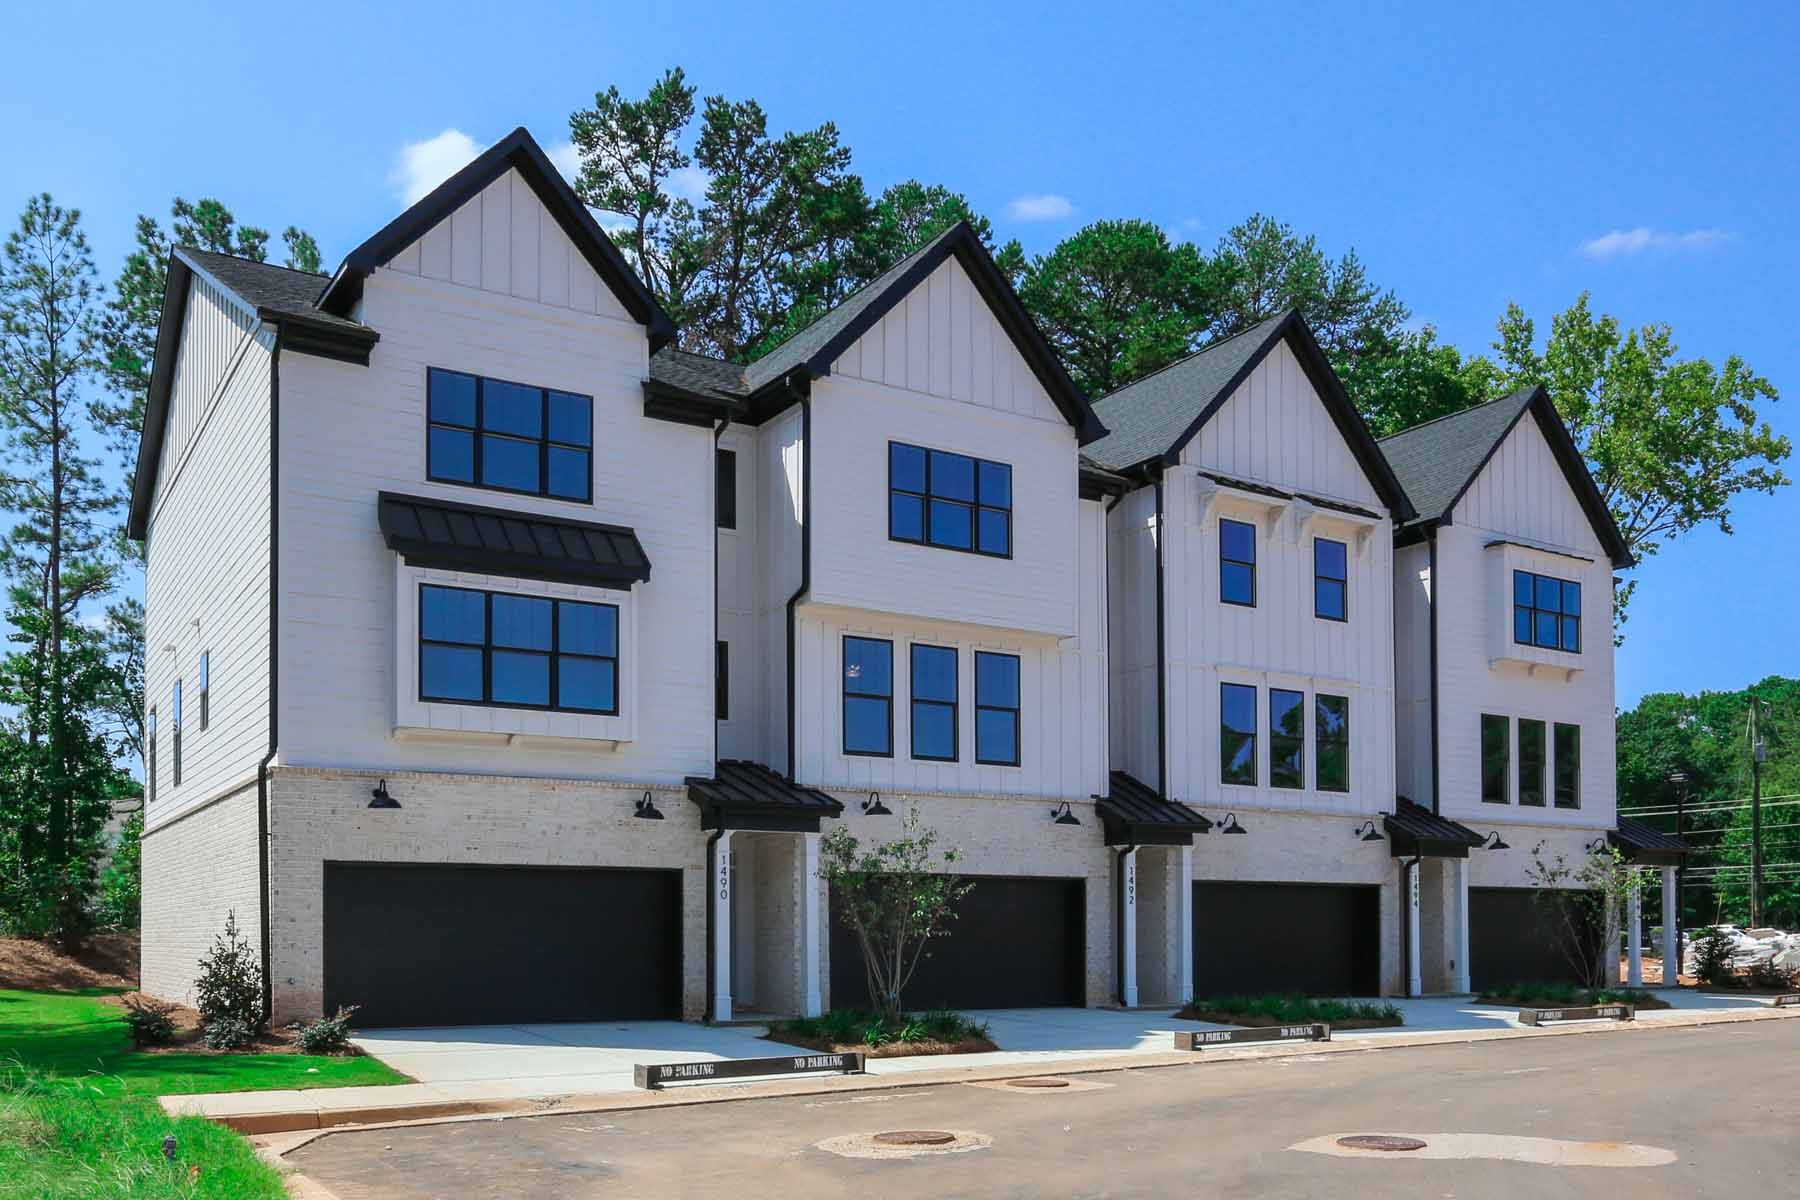 townhouses のために 売買 アット Beautiful New Townhome Located in Desirable Decatur 2729 Lawrenceville Highway No. 32, Decatur, ジョージア 30033 アメリカ